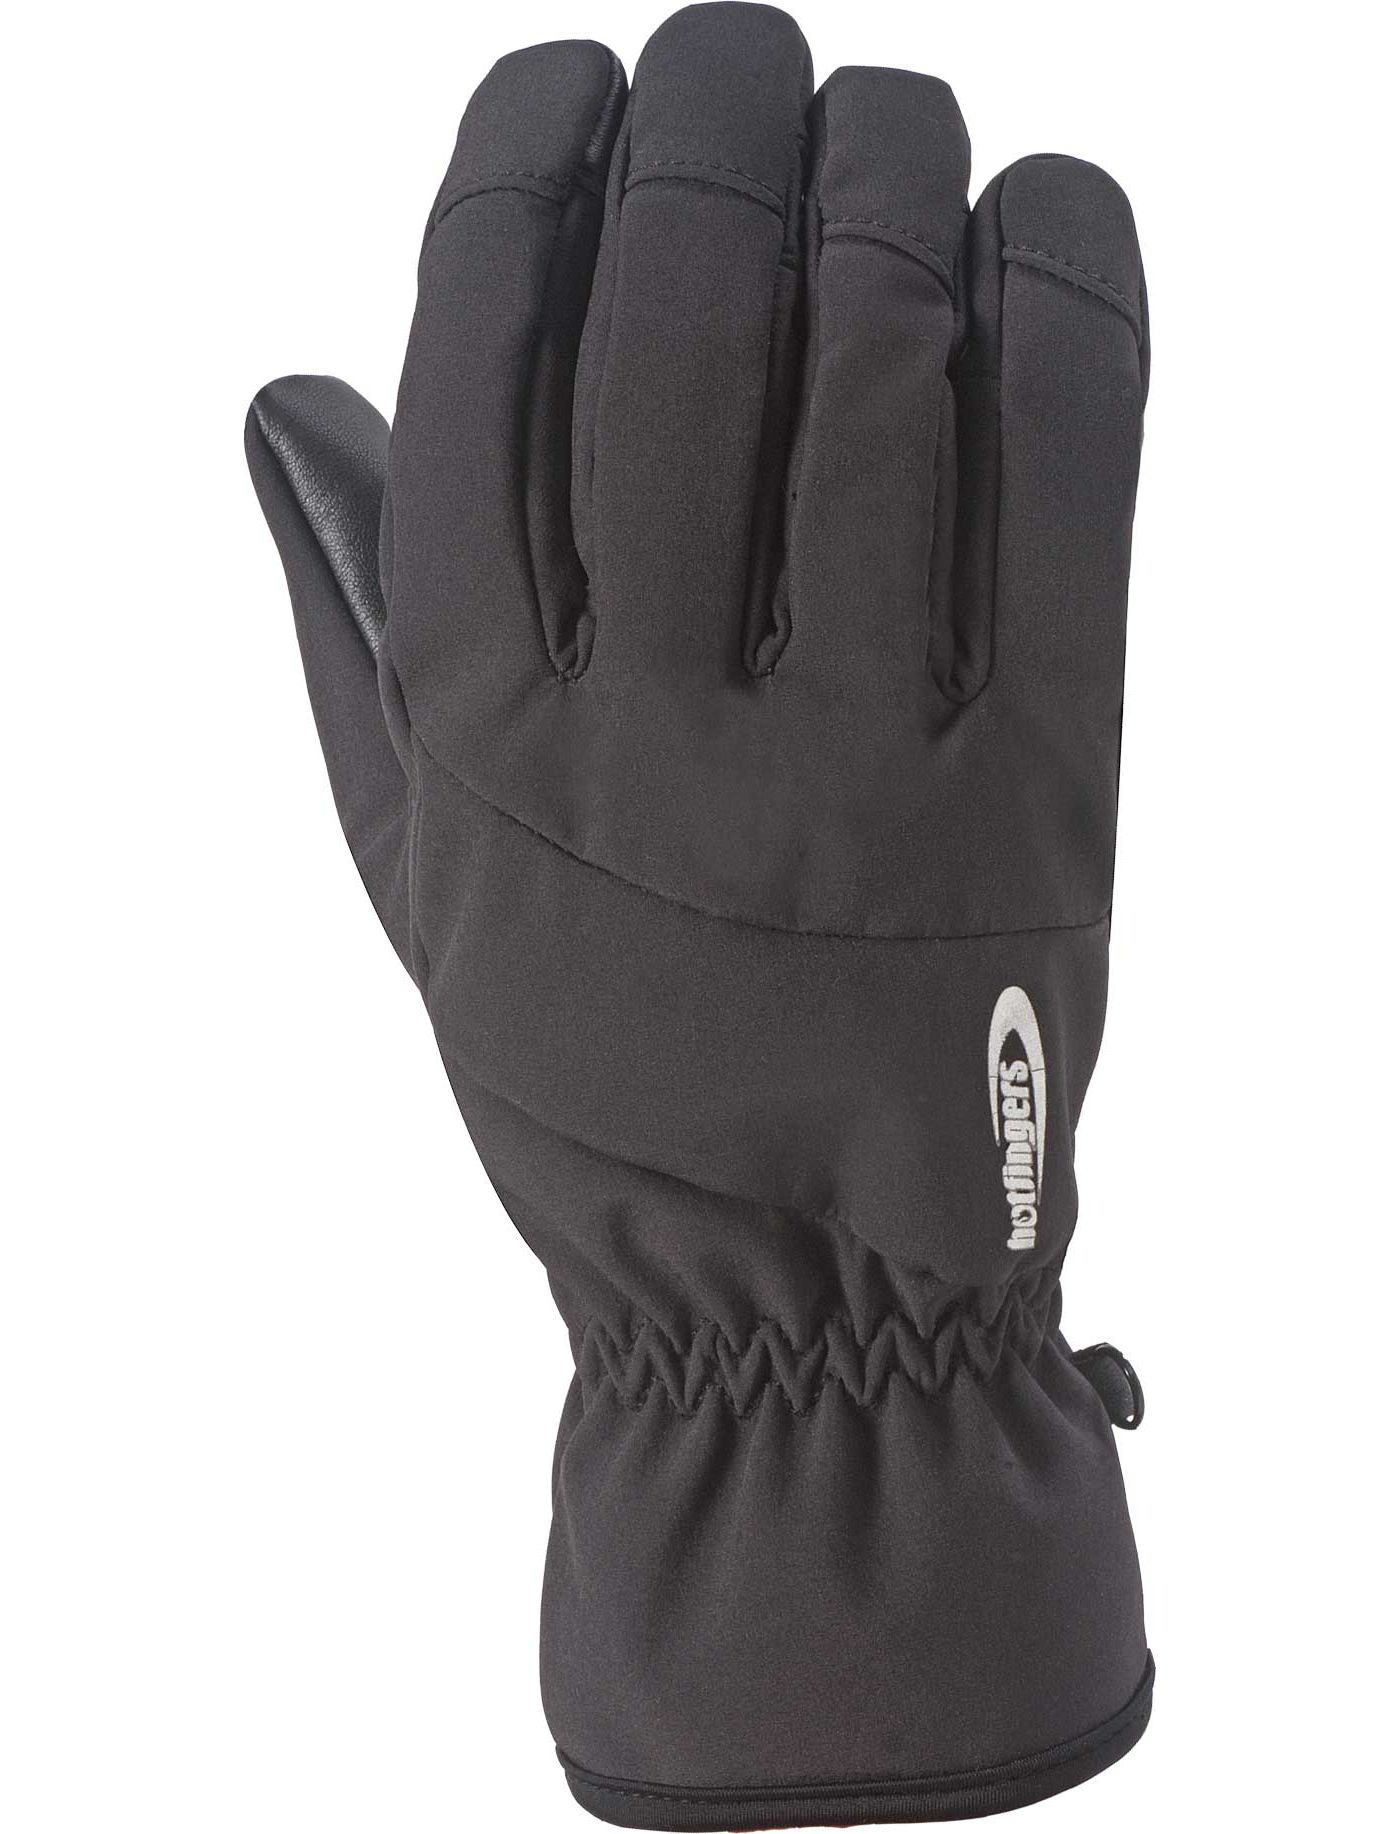 Hot Fingers Men's Storm Insulated Gloves